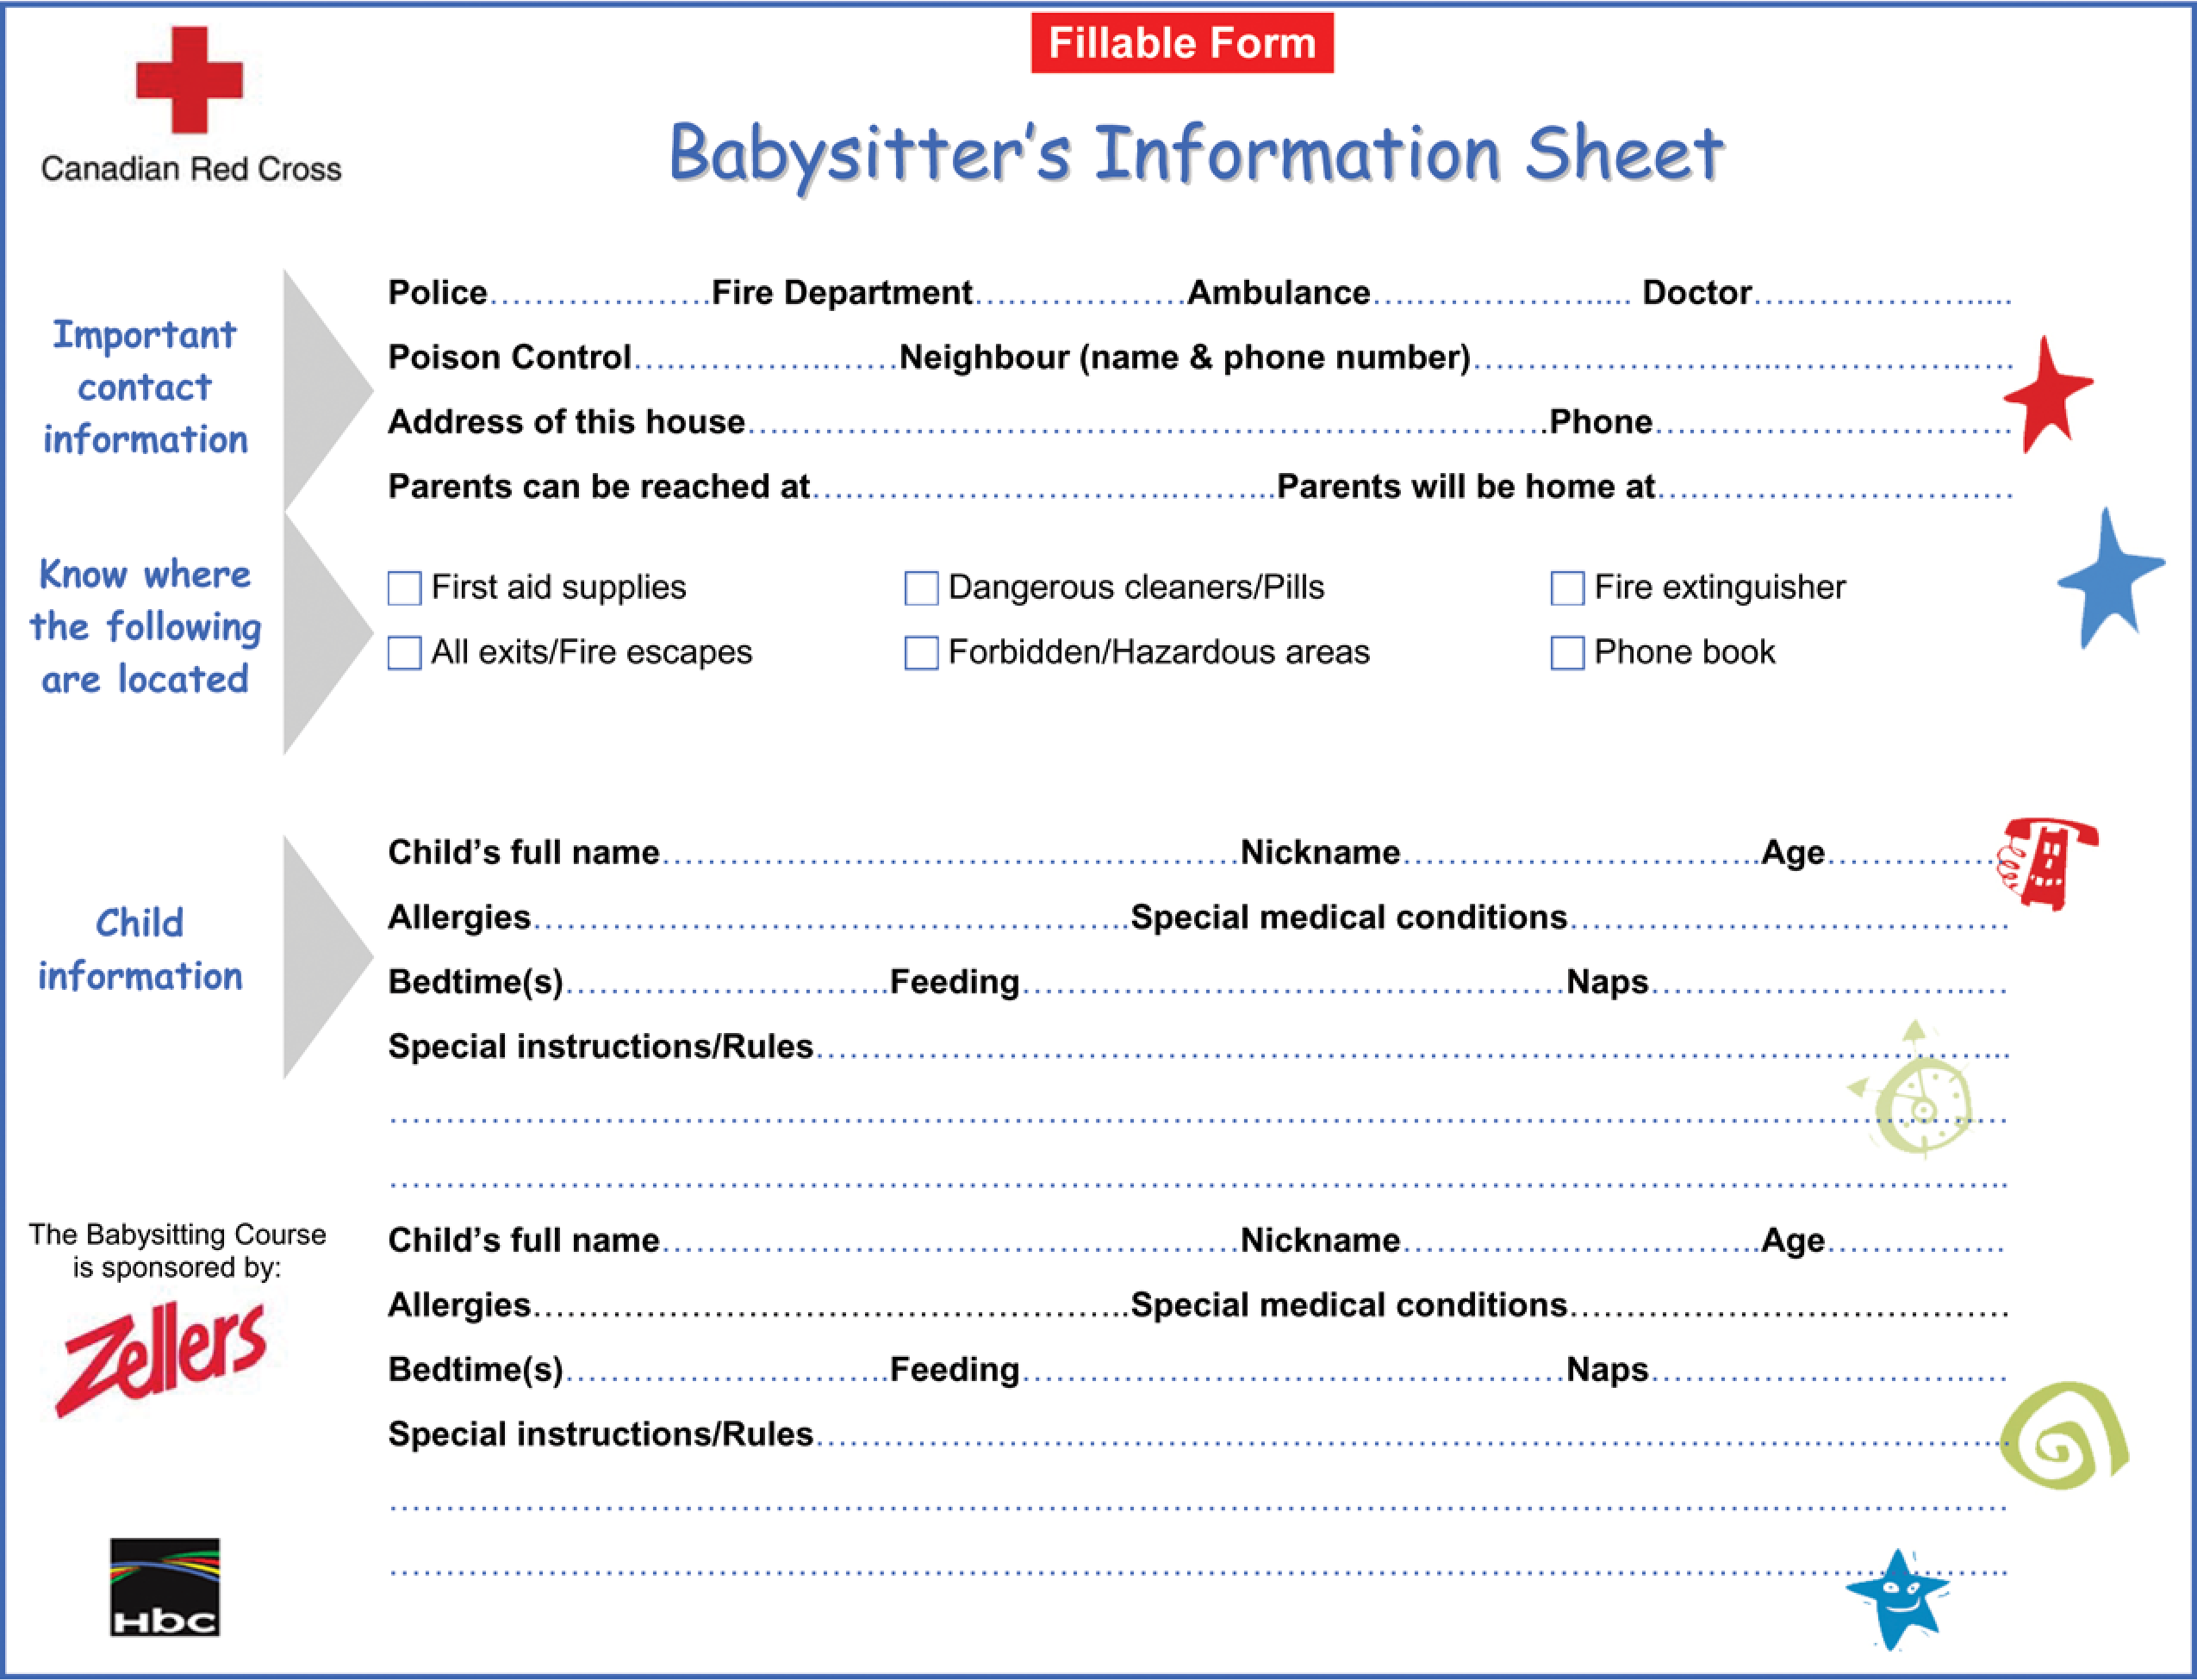 Printable Babysitter Information Sheet Main Image With